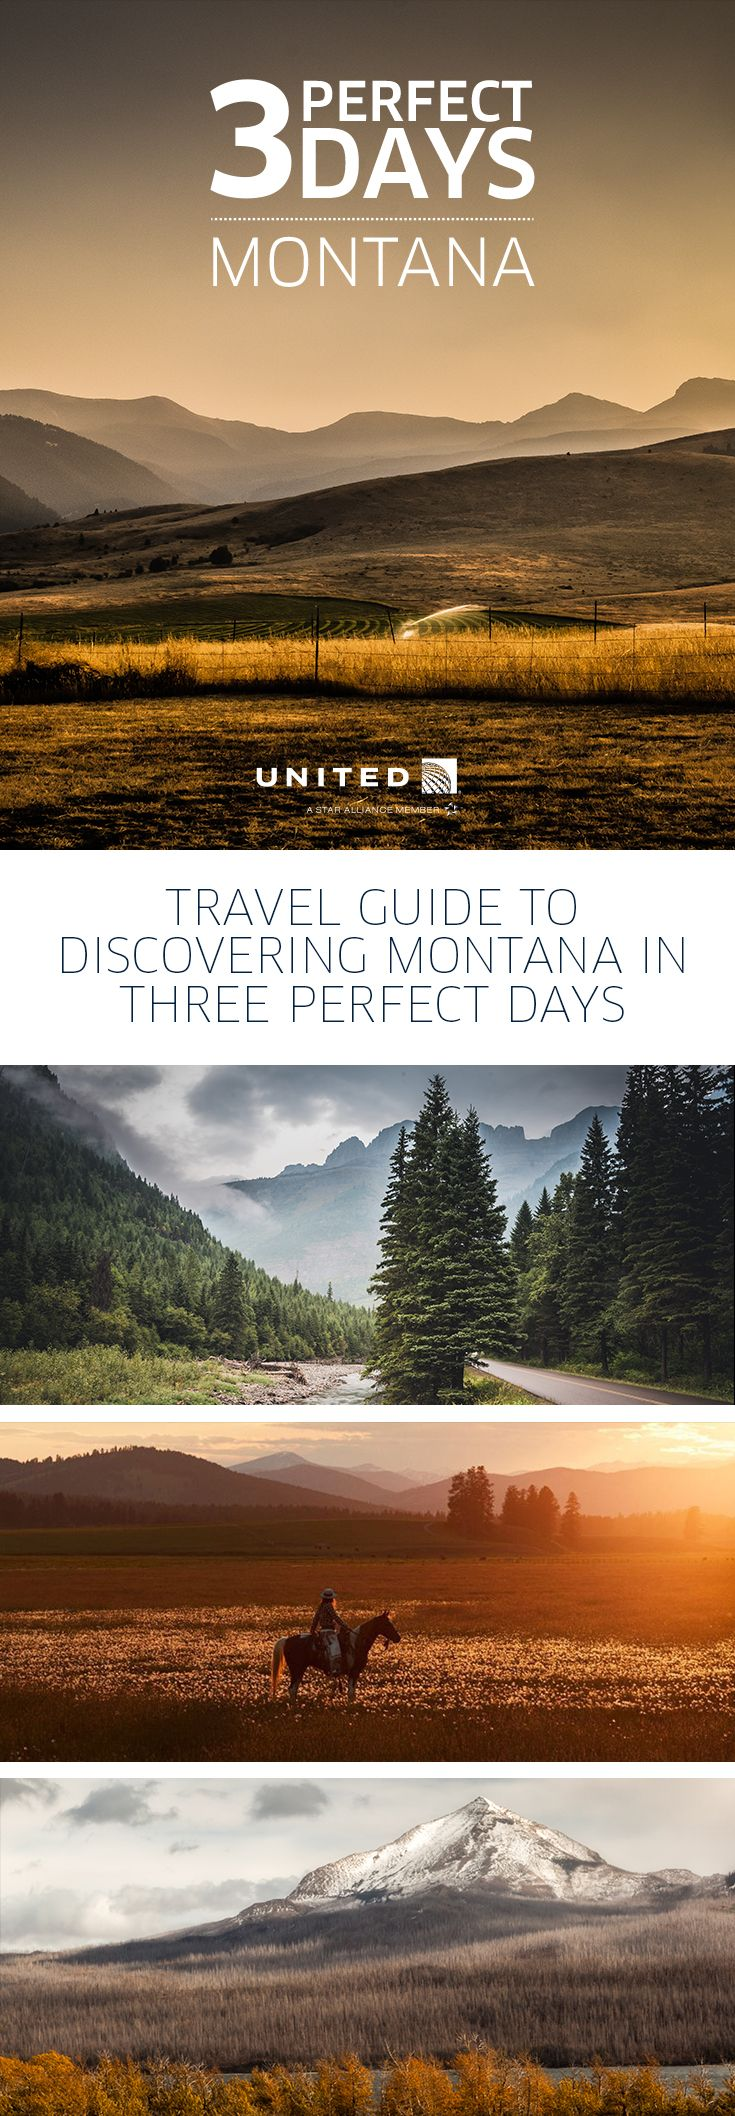 Montana outdoors three-day travel guide